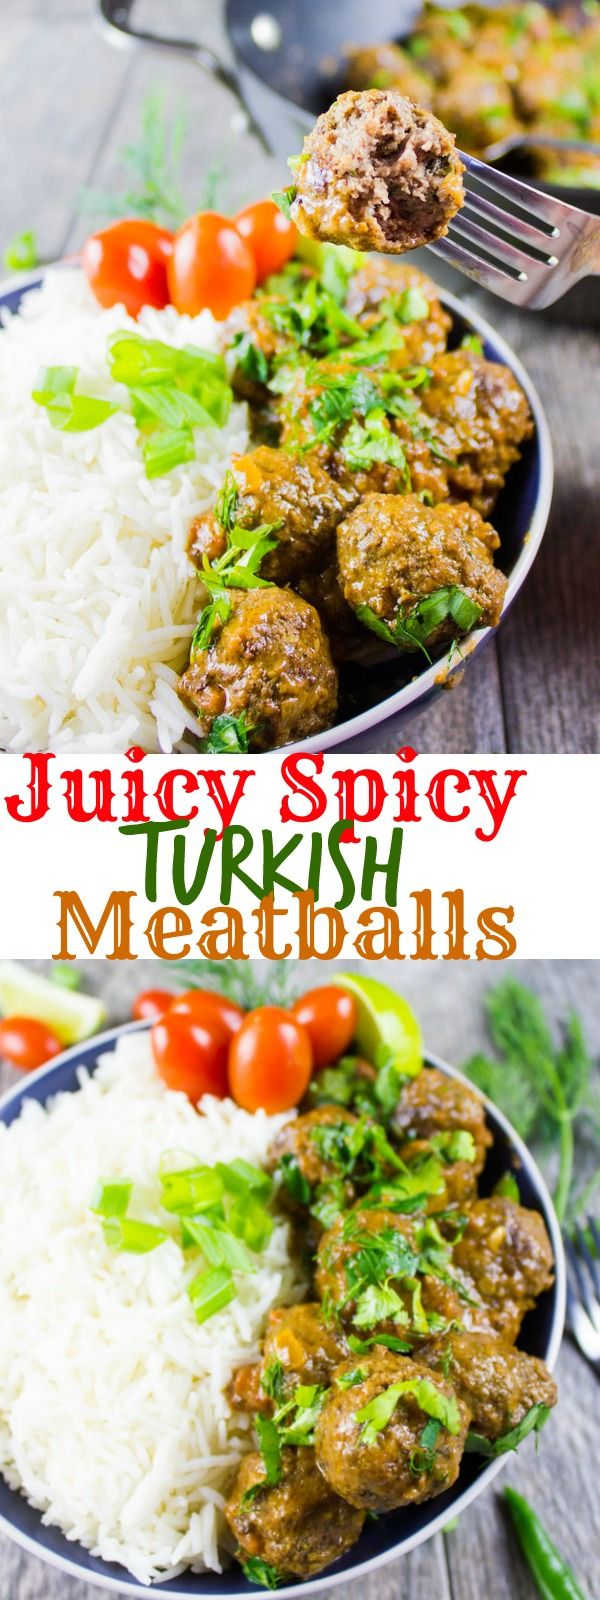 Juicy Spicy Turkish Meatballs. These are not your average meatballs, they're upscale and flavor packed meatballs bathed in a spicy yogurt tomato sauce! recipe handed down from my Turkish grandma, so you can't miss it! www.twopurplefigs.com